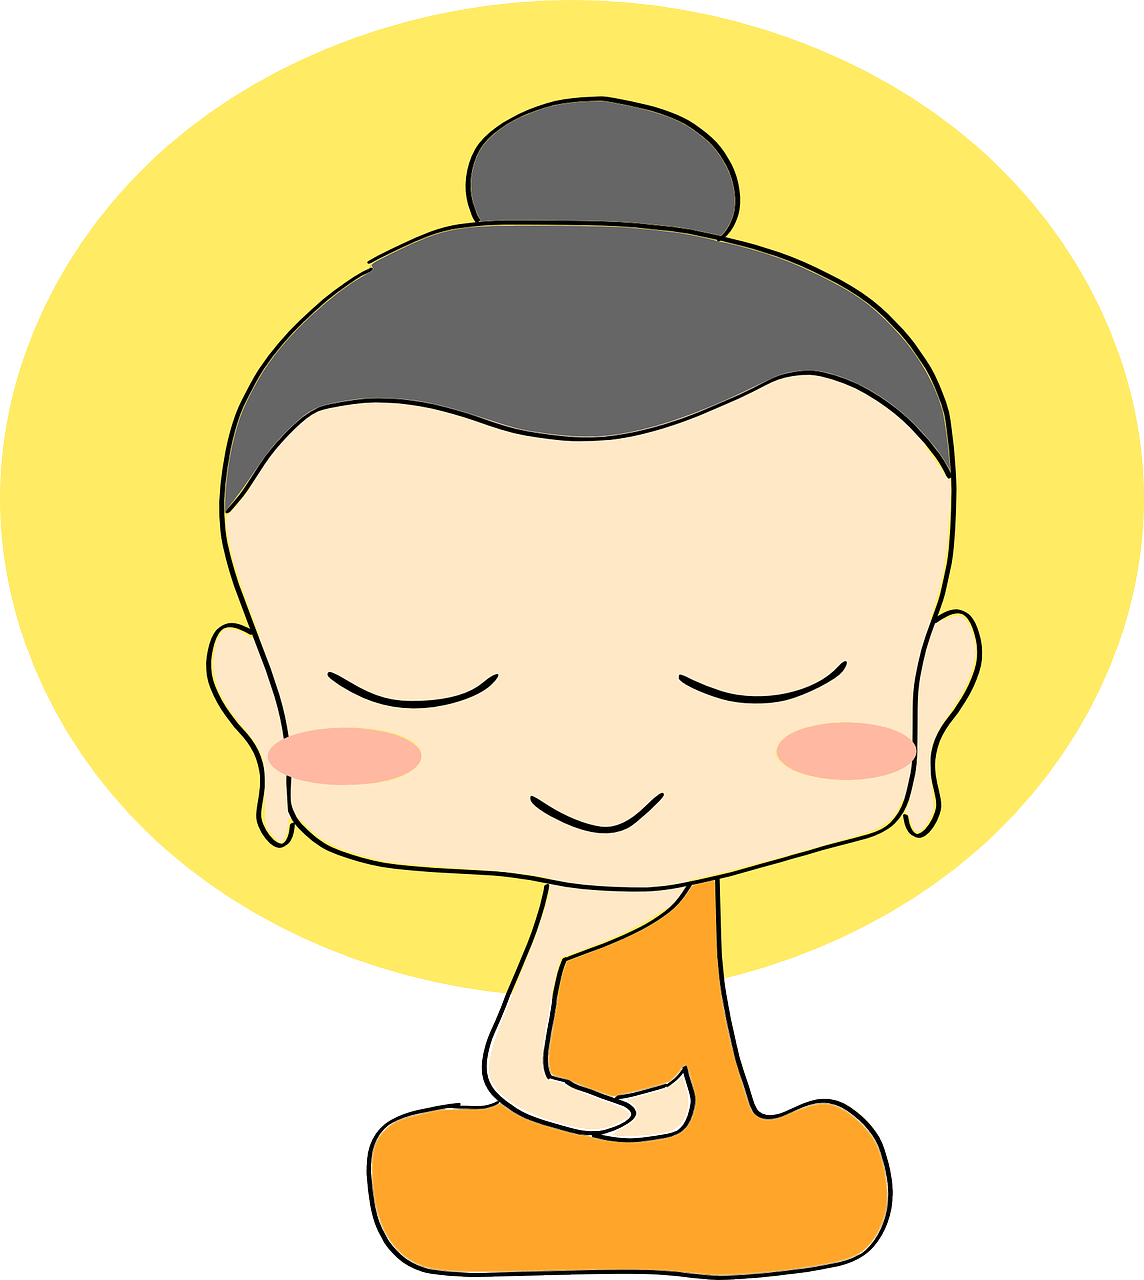 svg transparent download What is mindfulness renaissance. Worry clipart awed